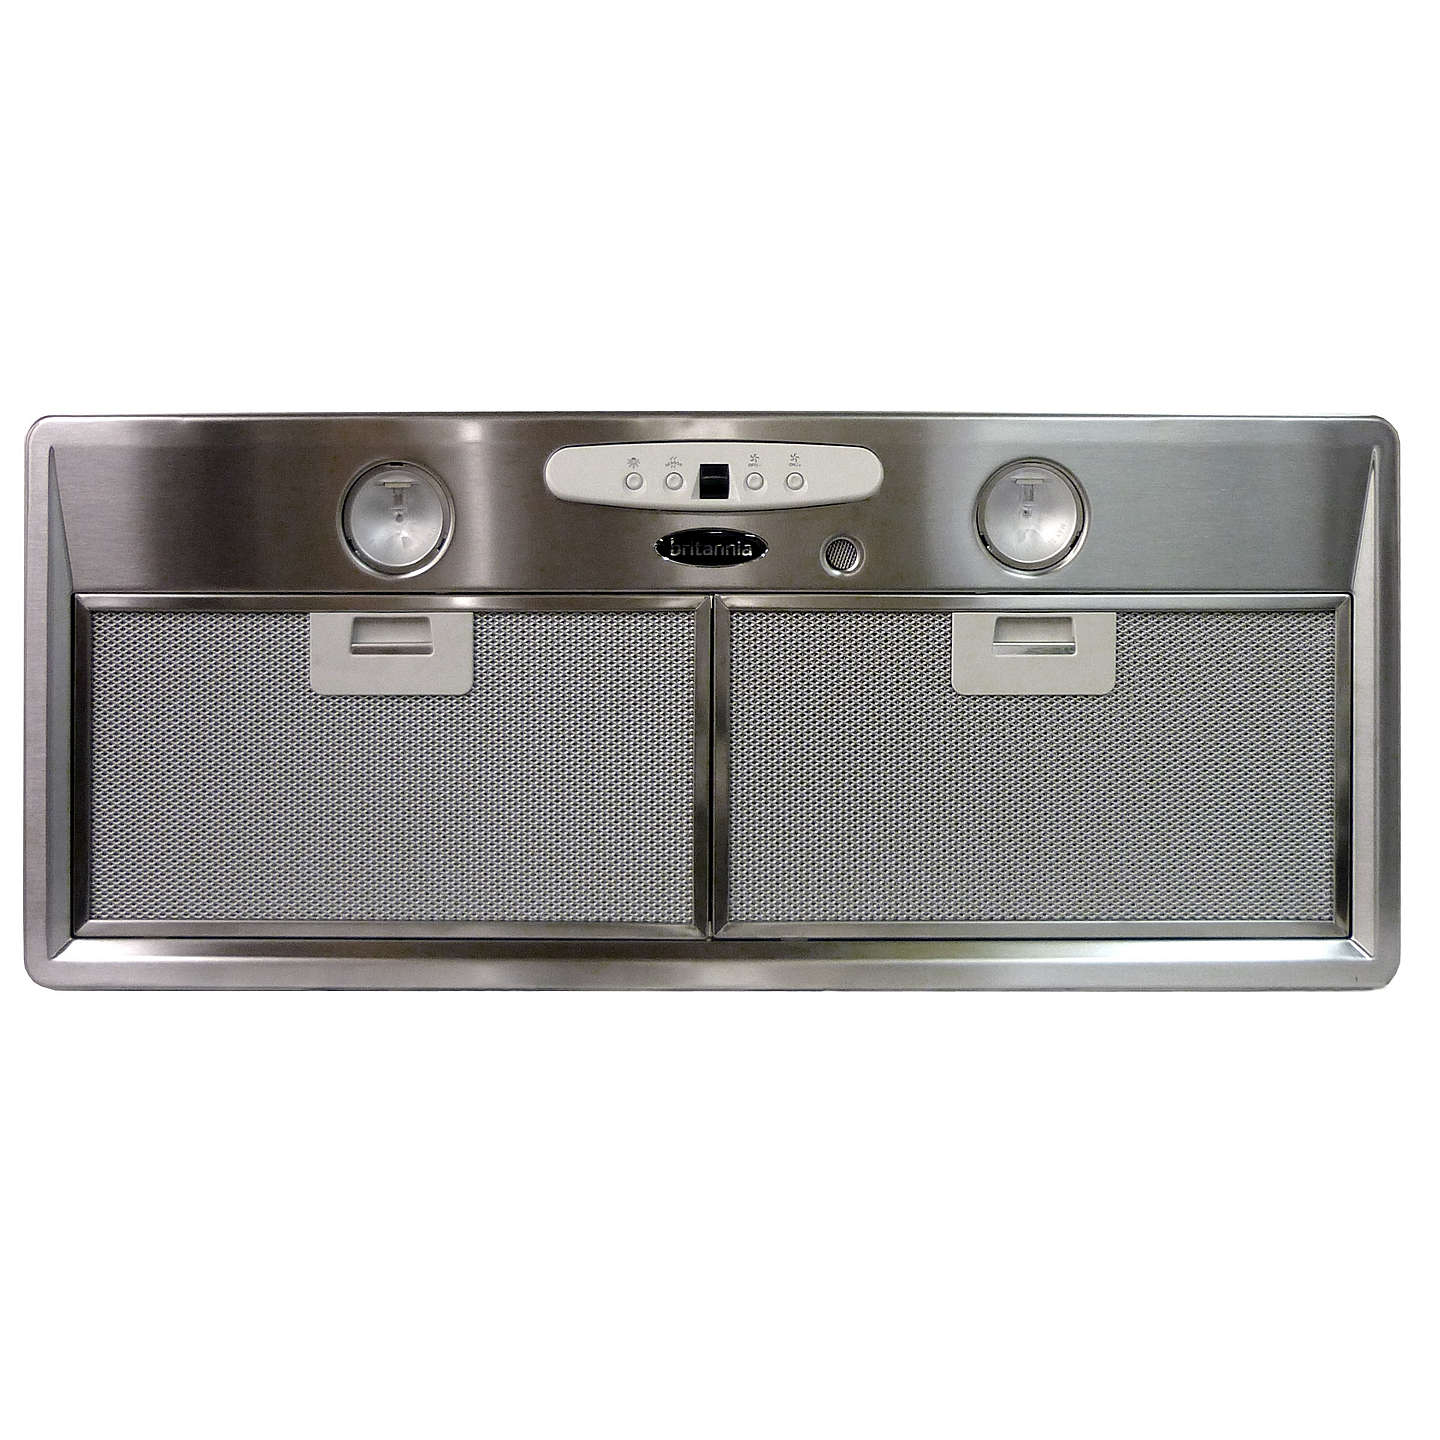 BuyBritannia HOOD-P780-70A Intimo Canopy Cooker Hood, Stainless Steel Online at johnlewis.com